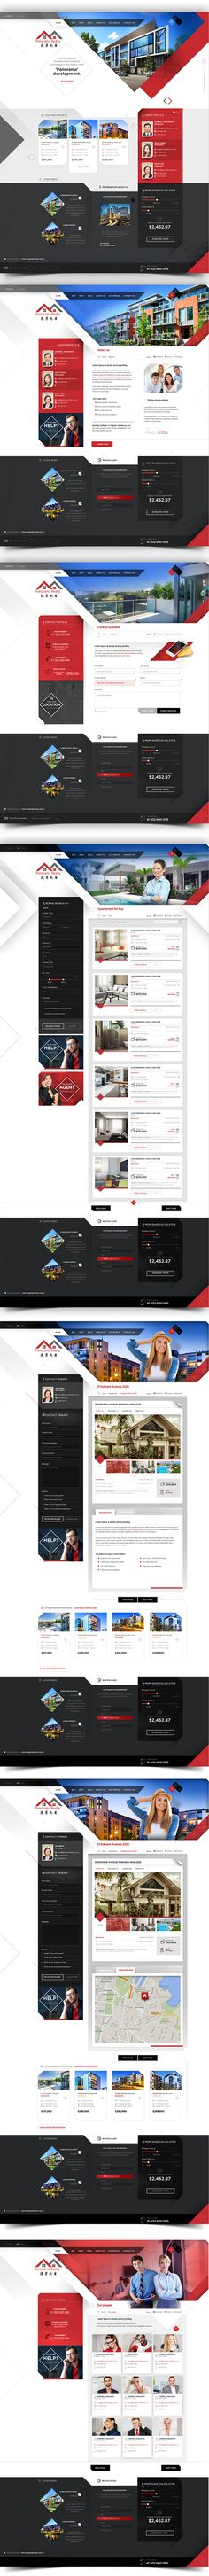 Panorama Realty on Behance